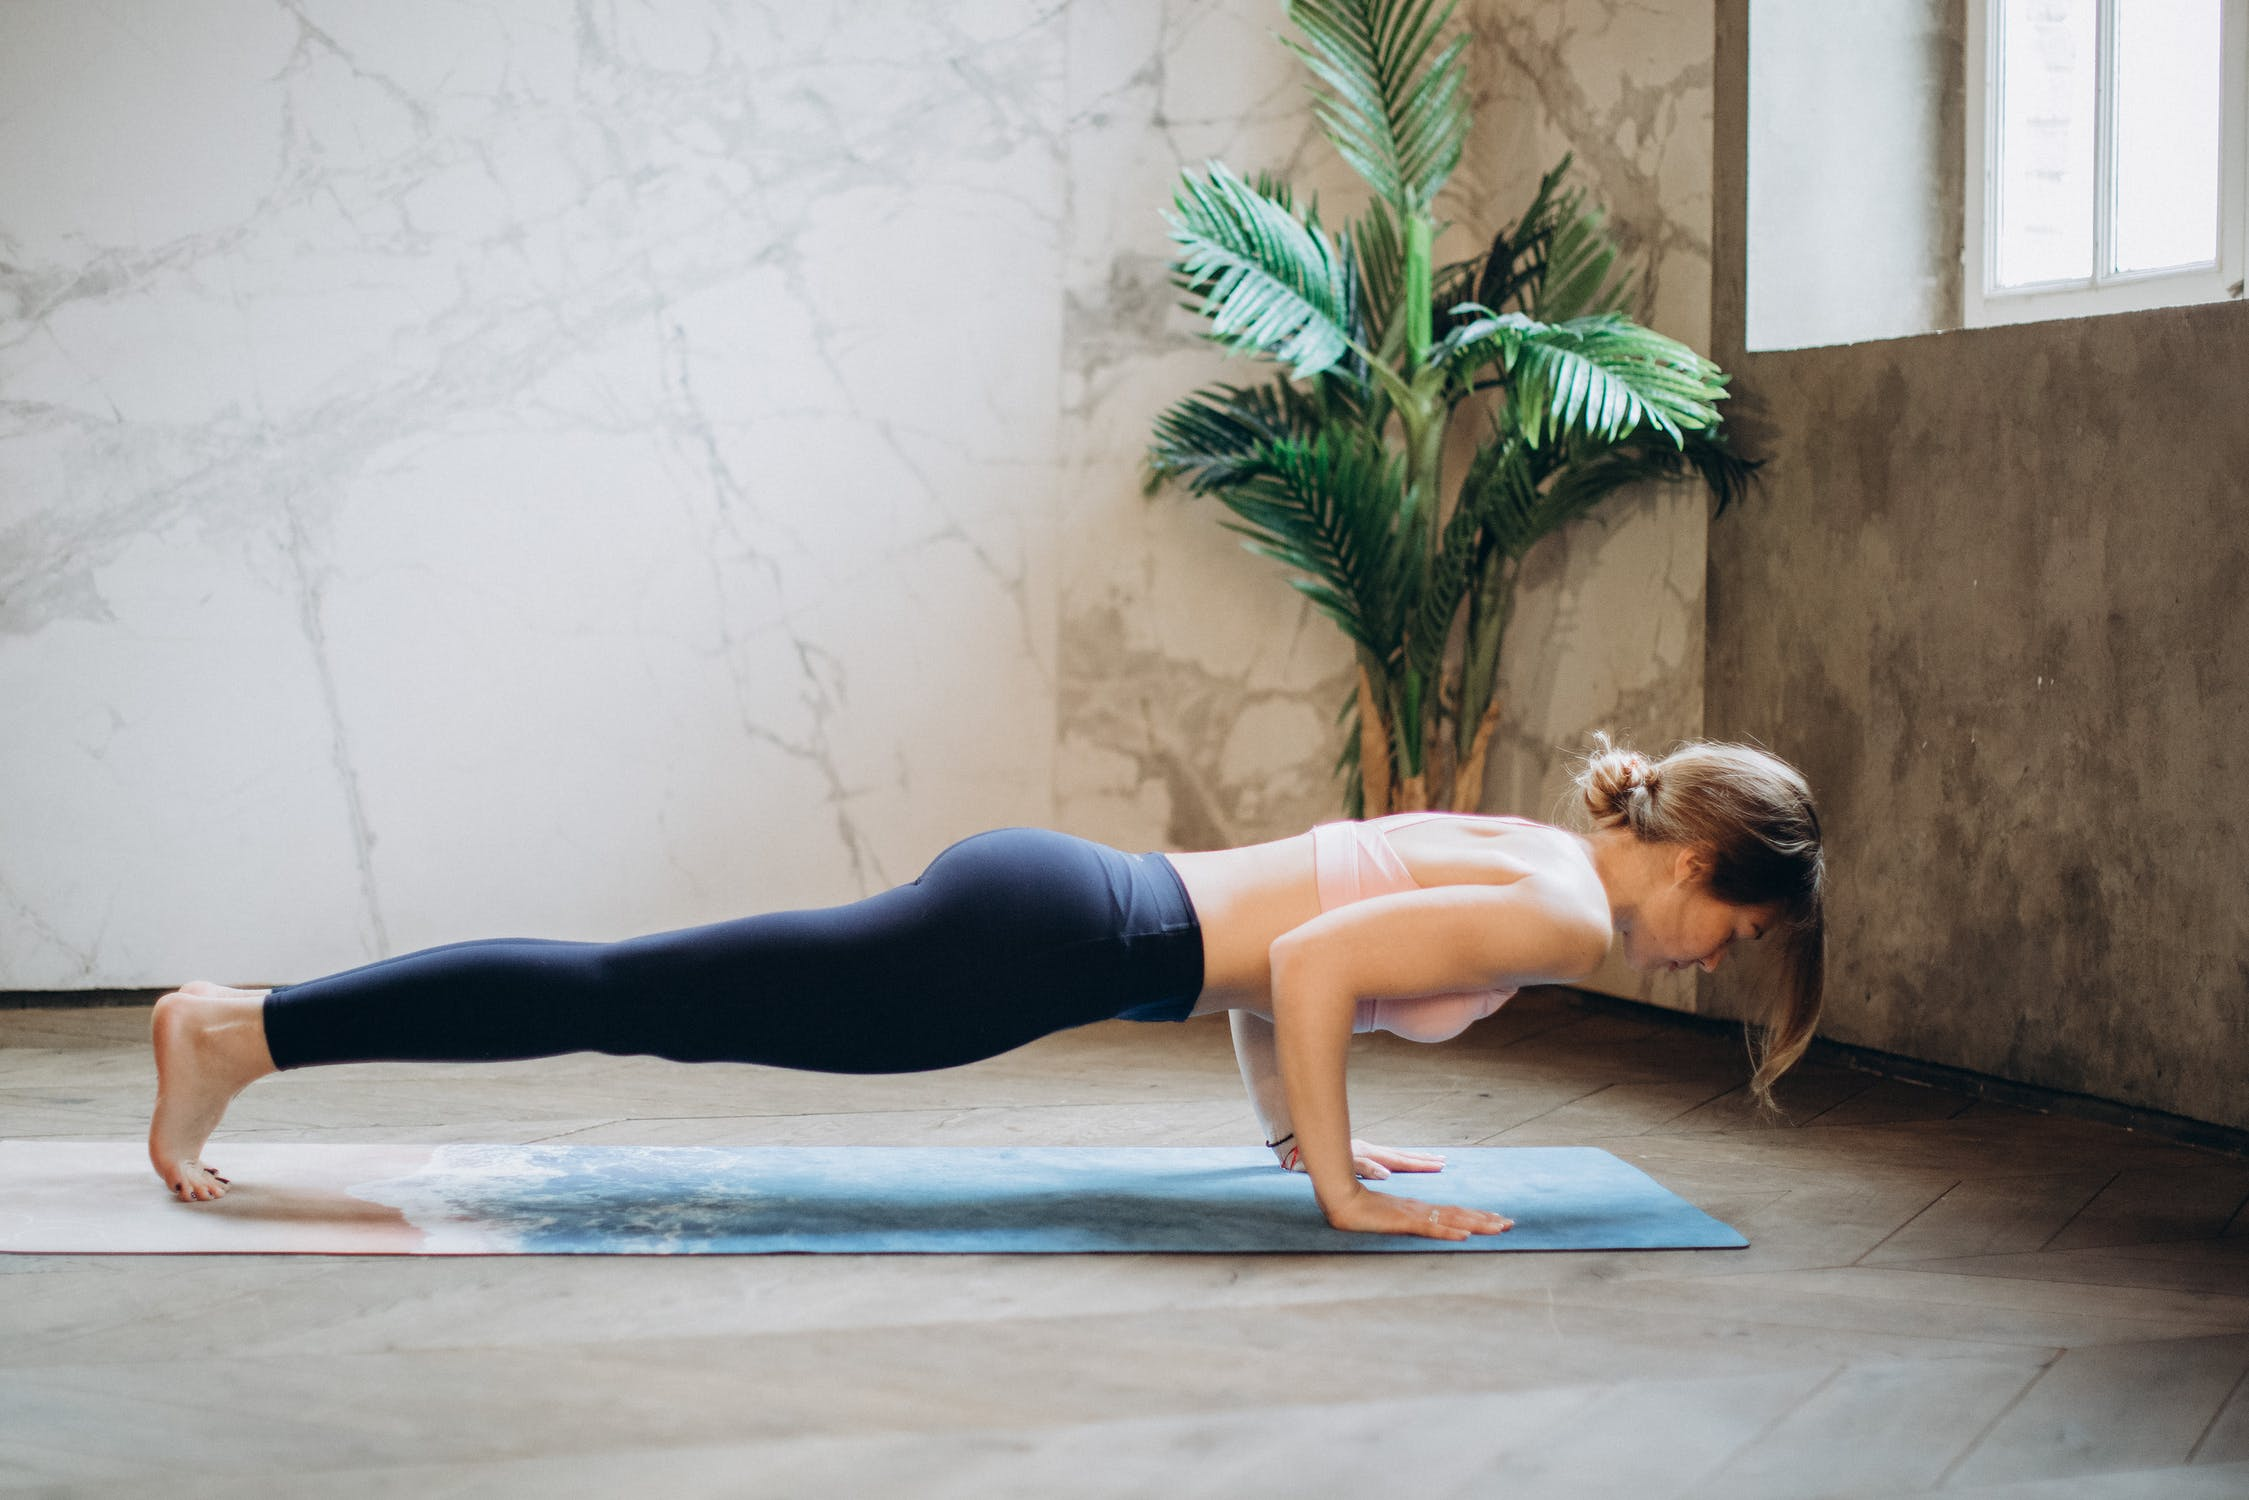 7 Ways to Effectively Workout at Home